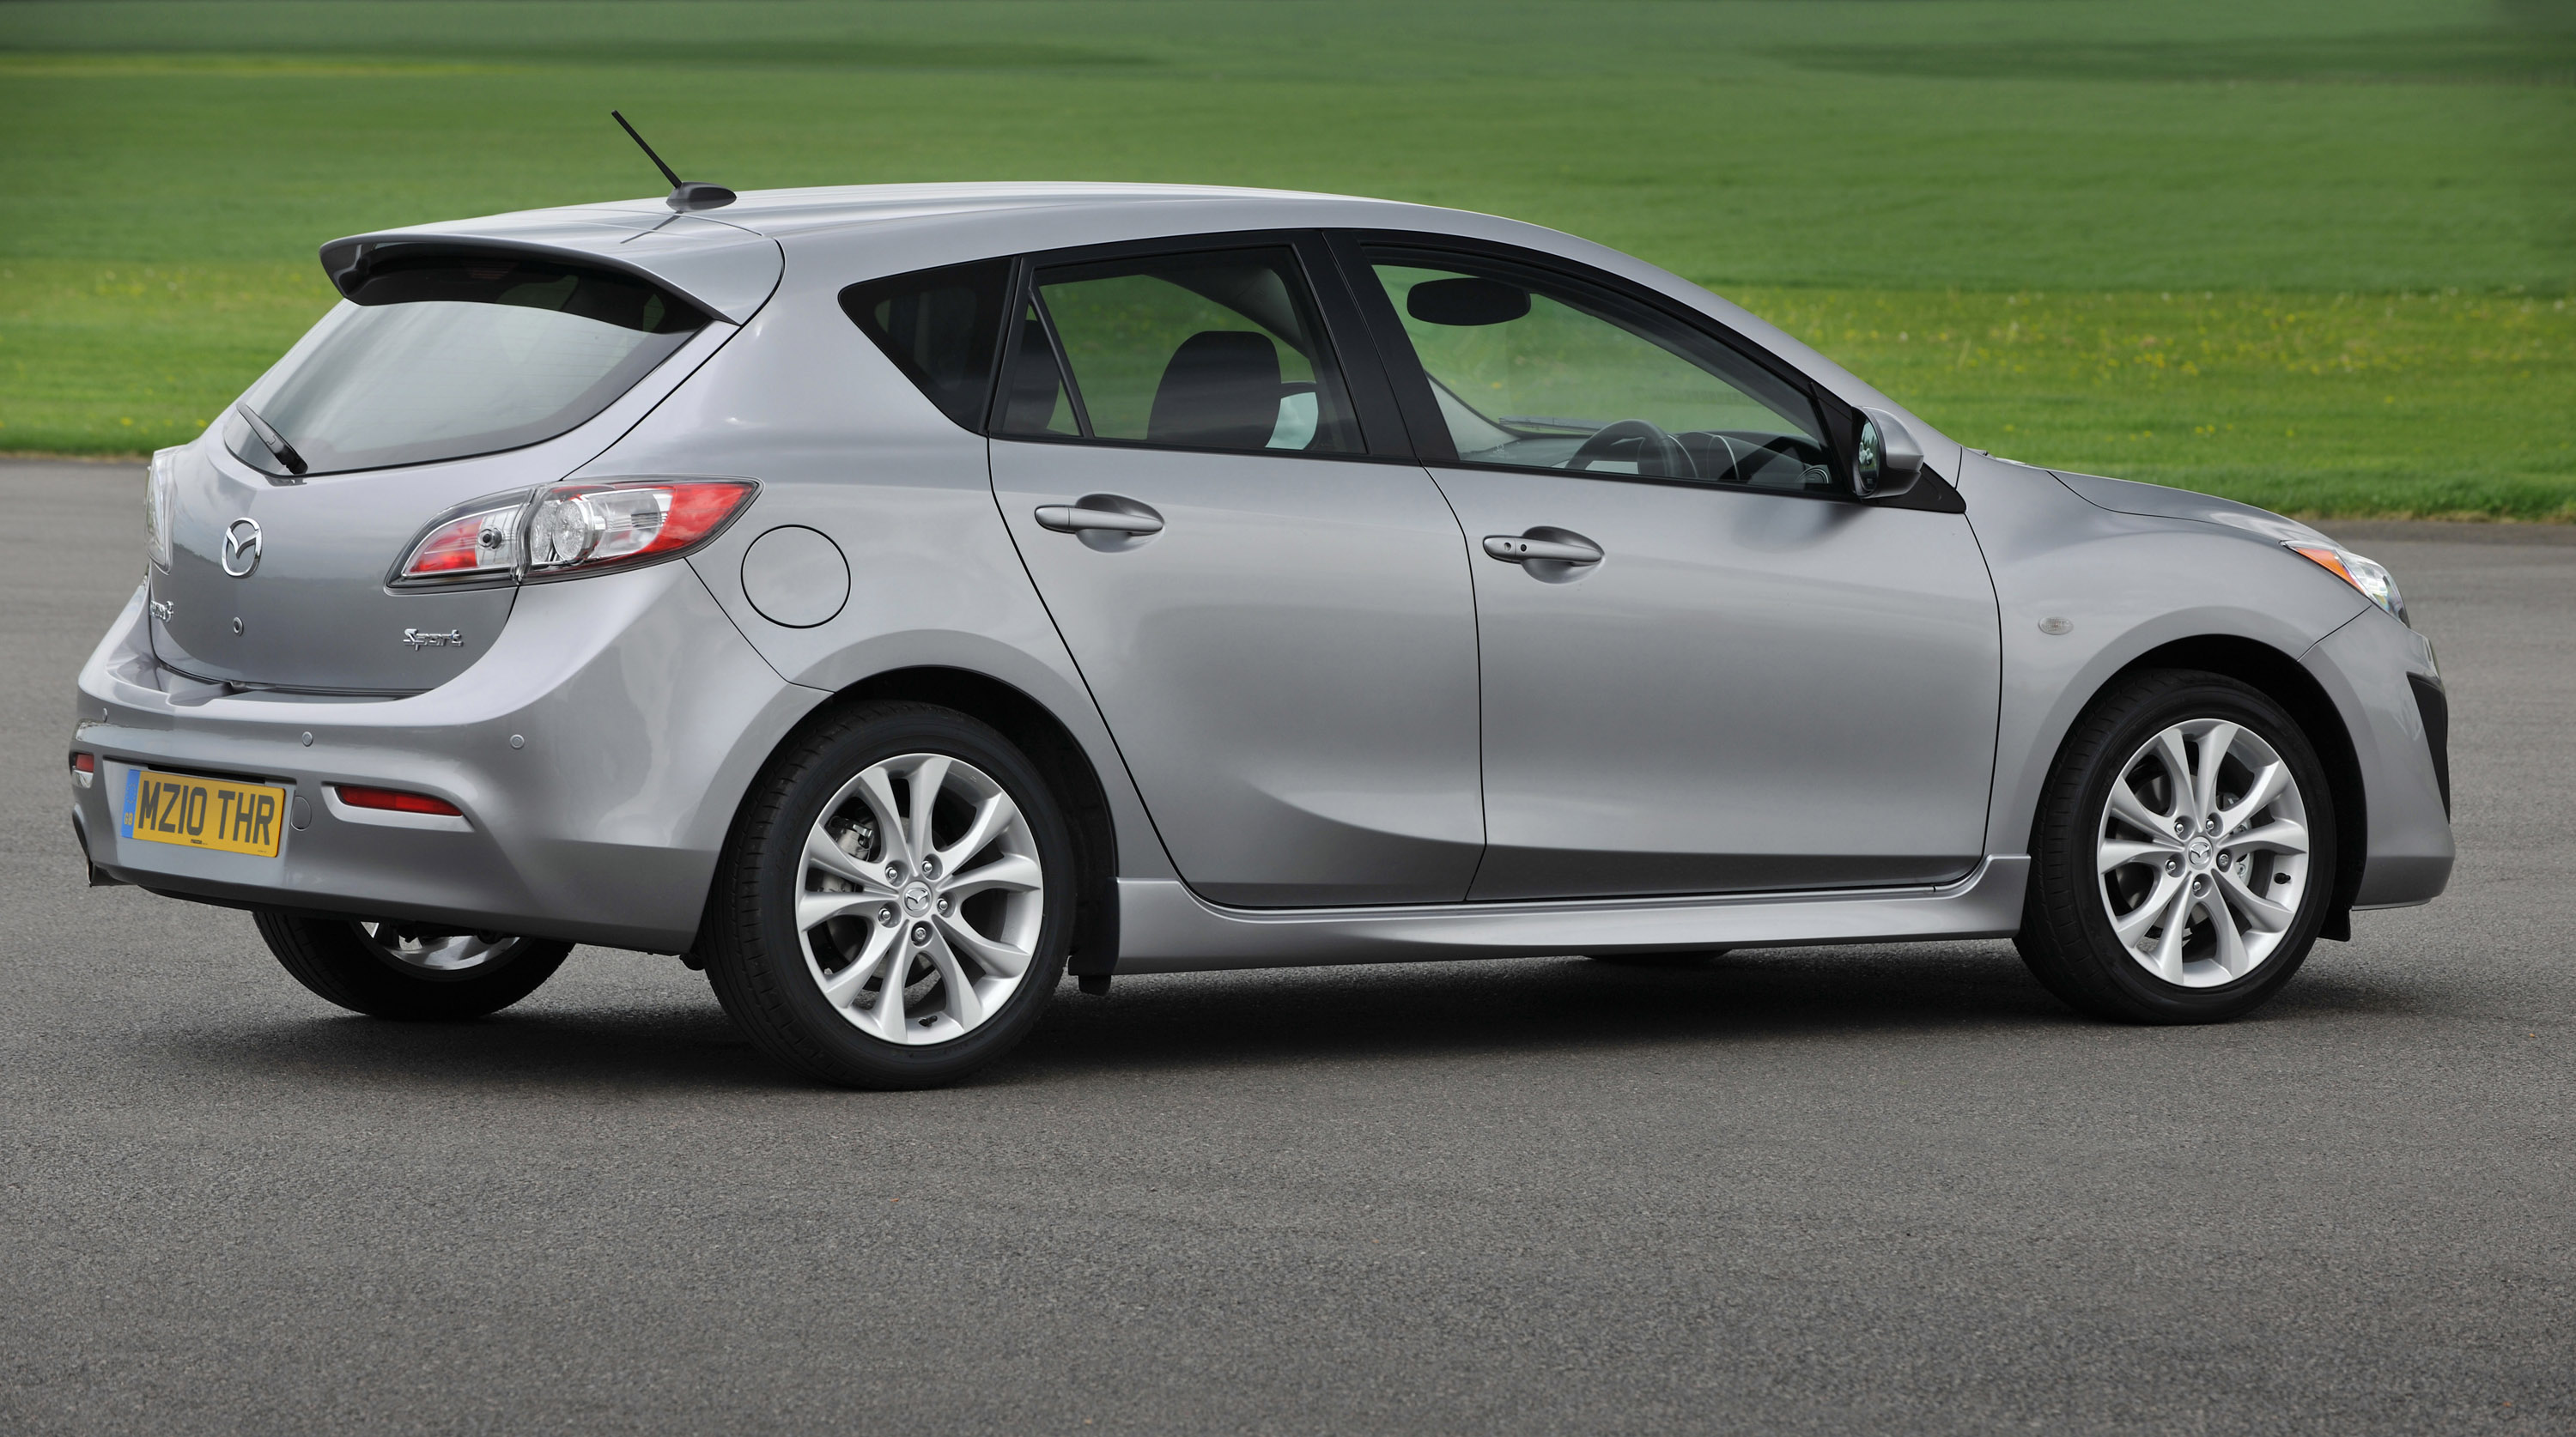 2011 mazda mazda 3 hatchback pictures information and specs auto. Black Bedroom Furniture Sets. Home Design Ideas